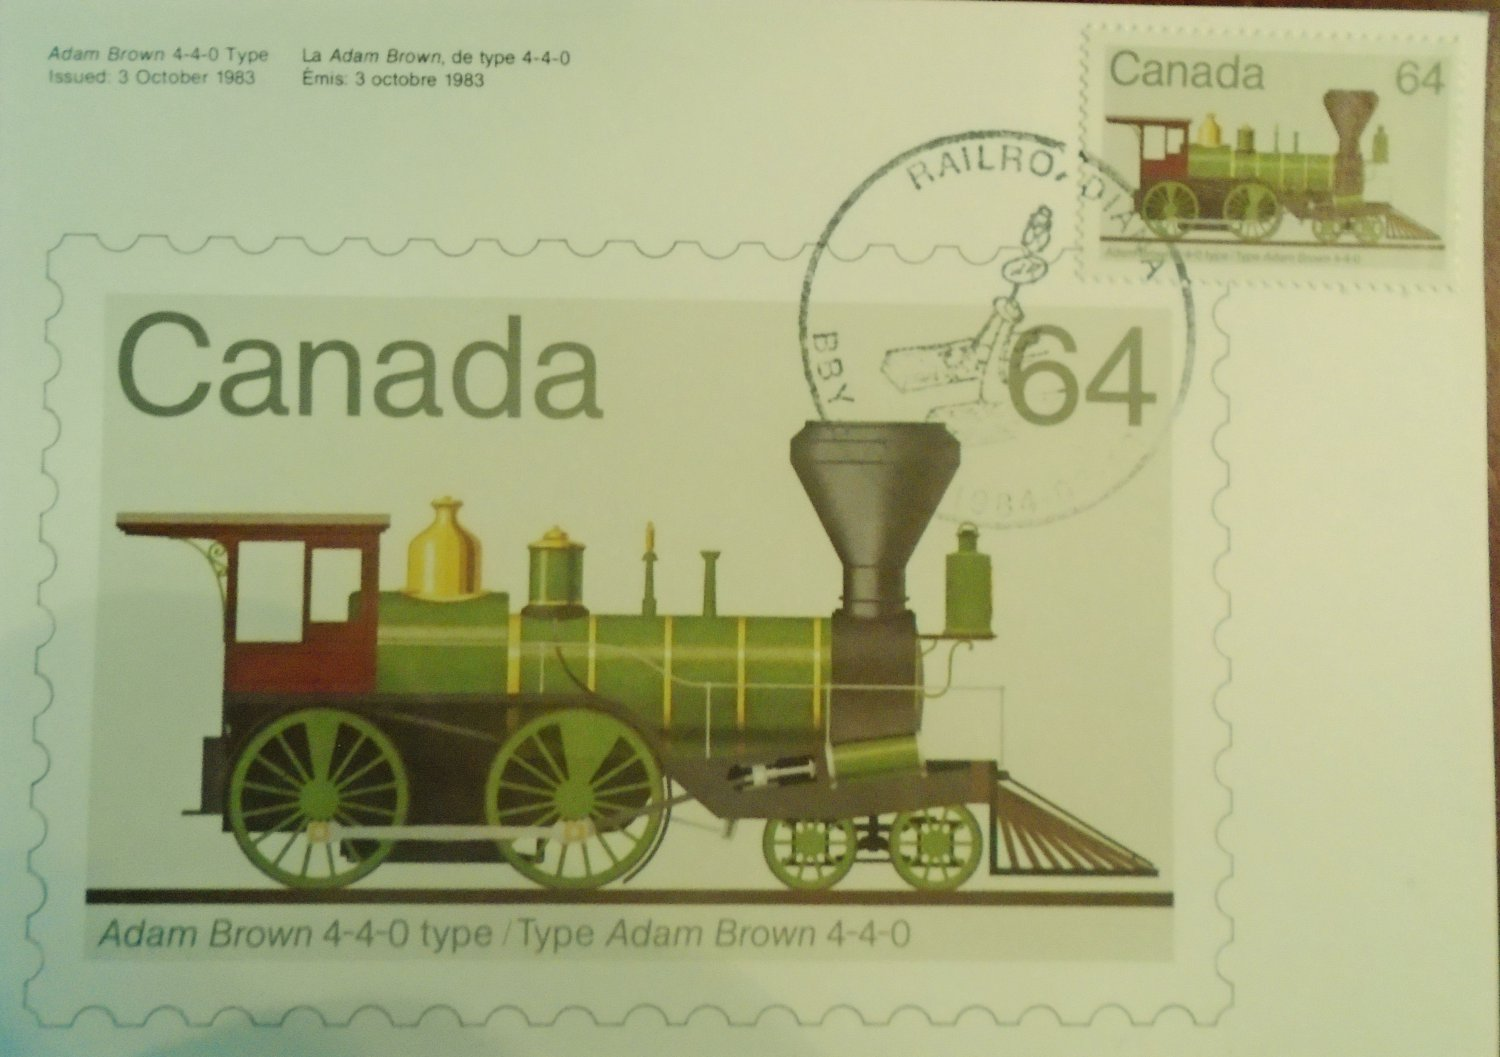 Canada 1984 Railroadiana First Day Cover Post Card Limited Edition #94 of 300  64 cents